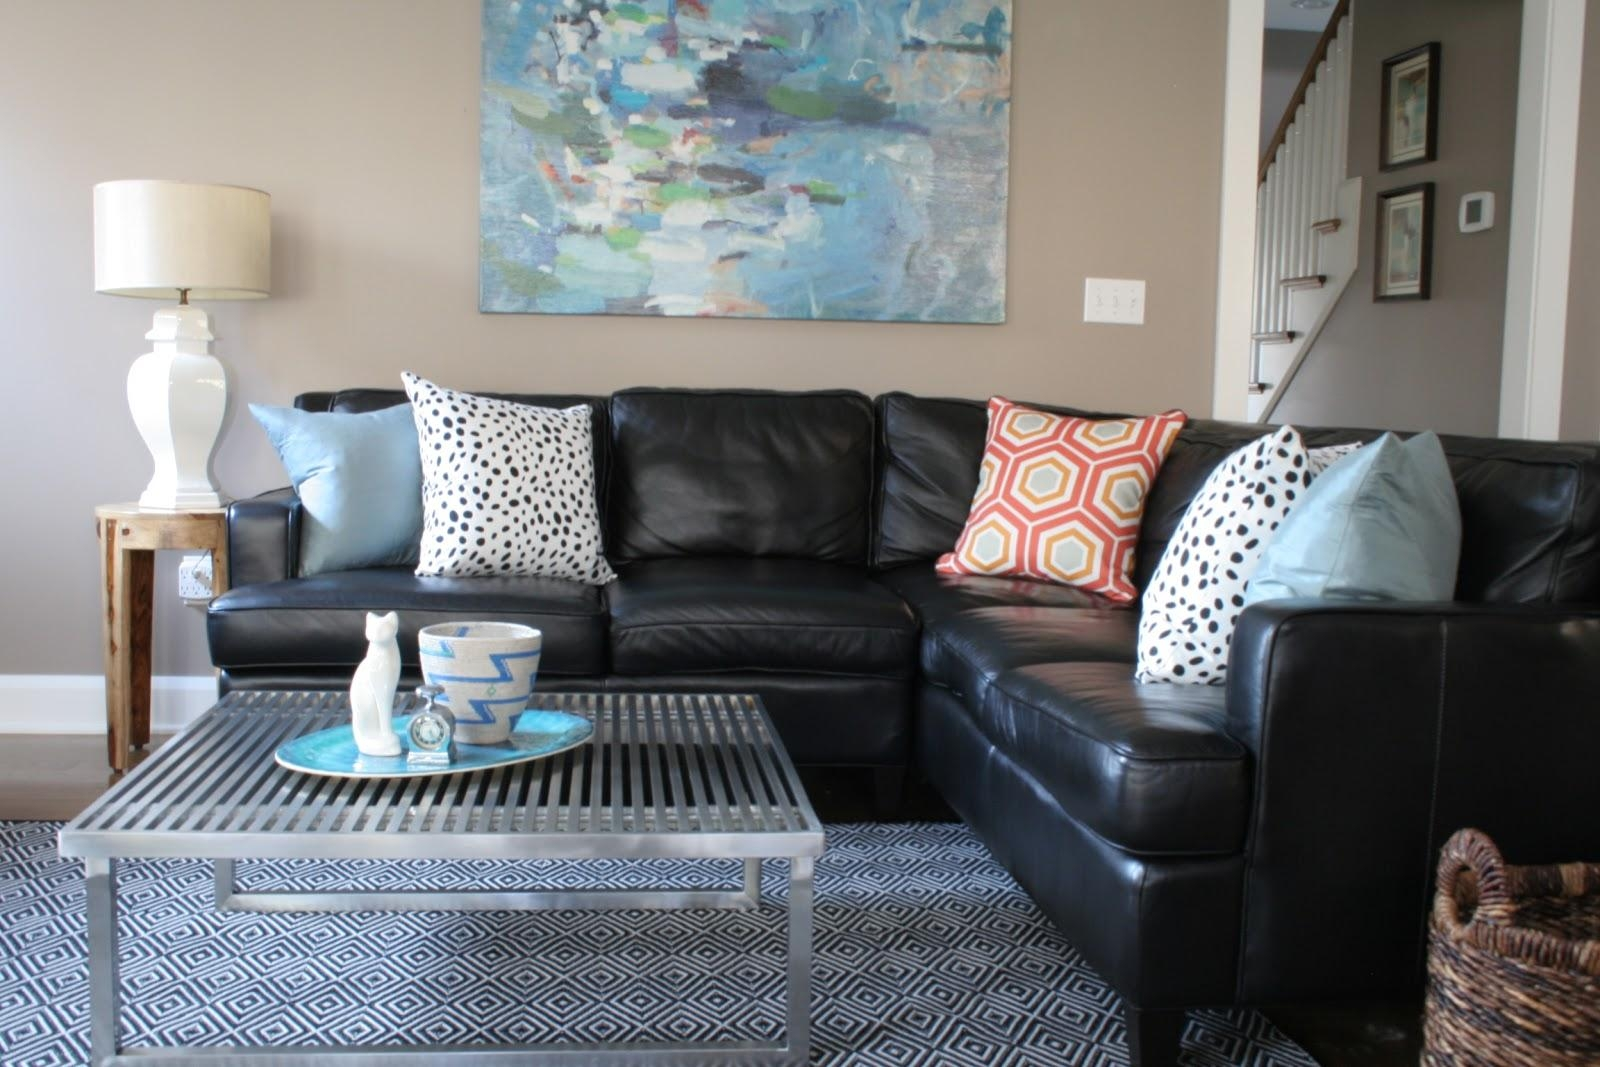 Surprising Living Room Ideas With Leather Sectional Grey Brown With Sectional Sofa Ideas (Image 20 of 20)